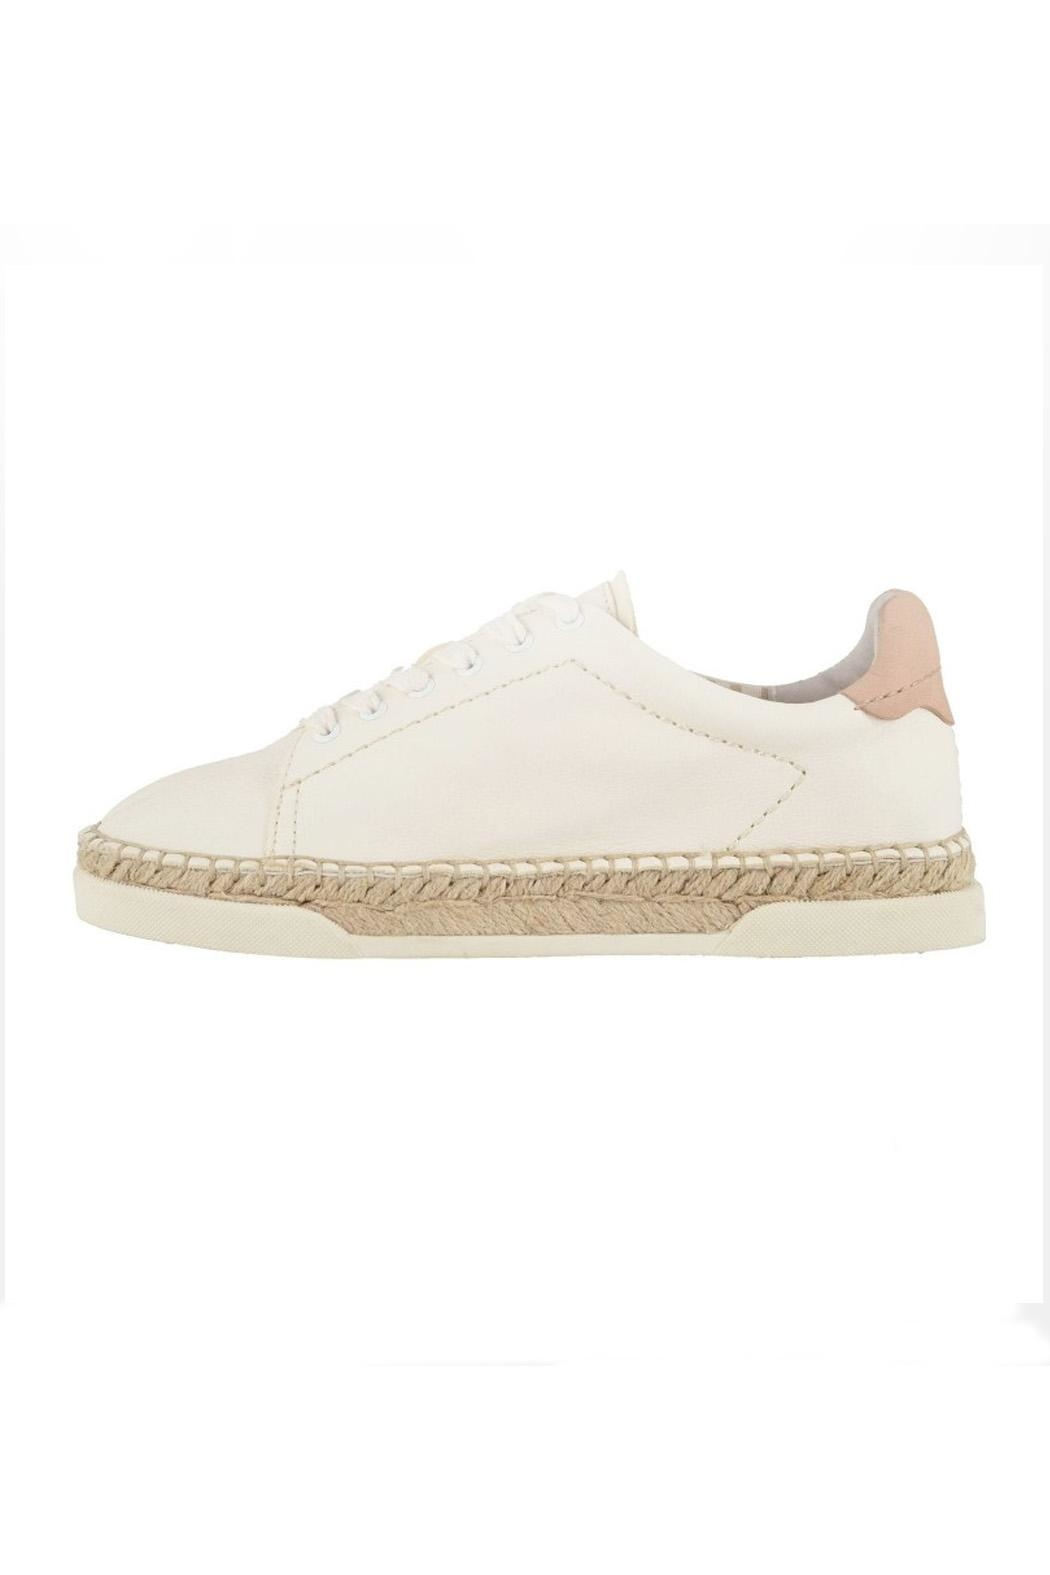 Dolce Vita Ivory Leather Sneakers - Main Image